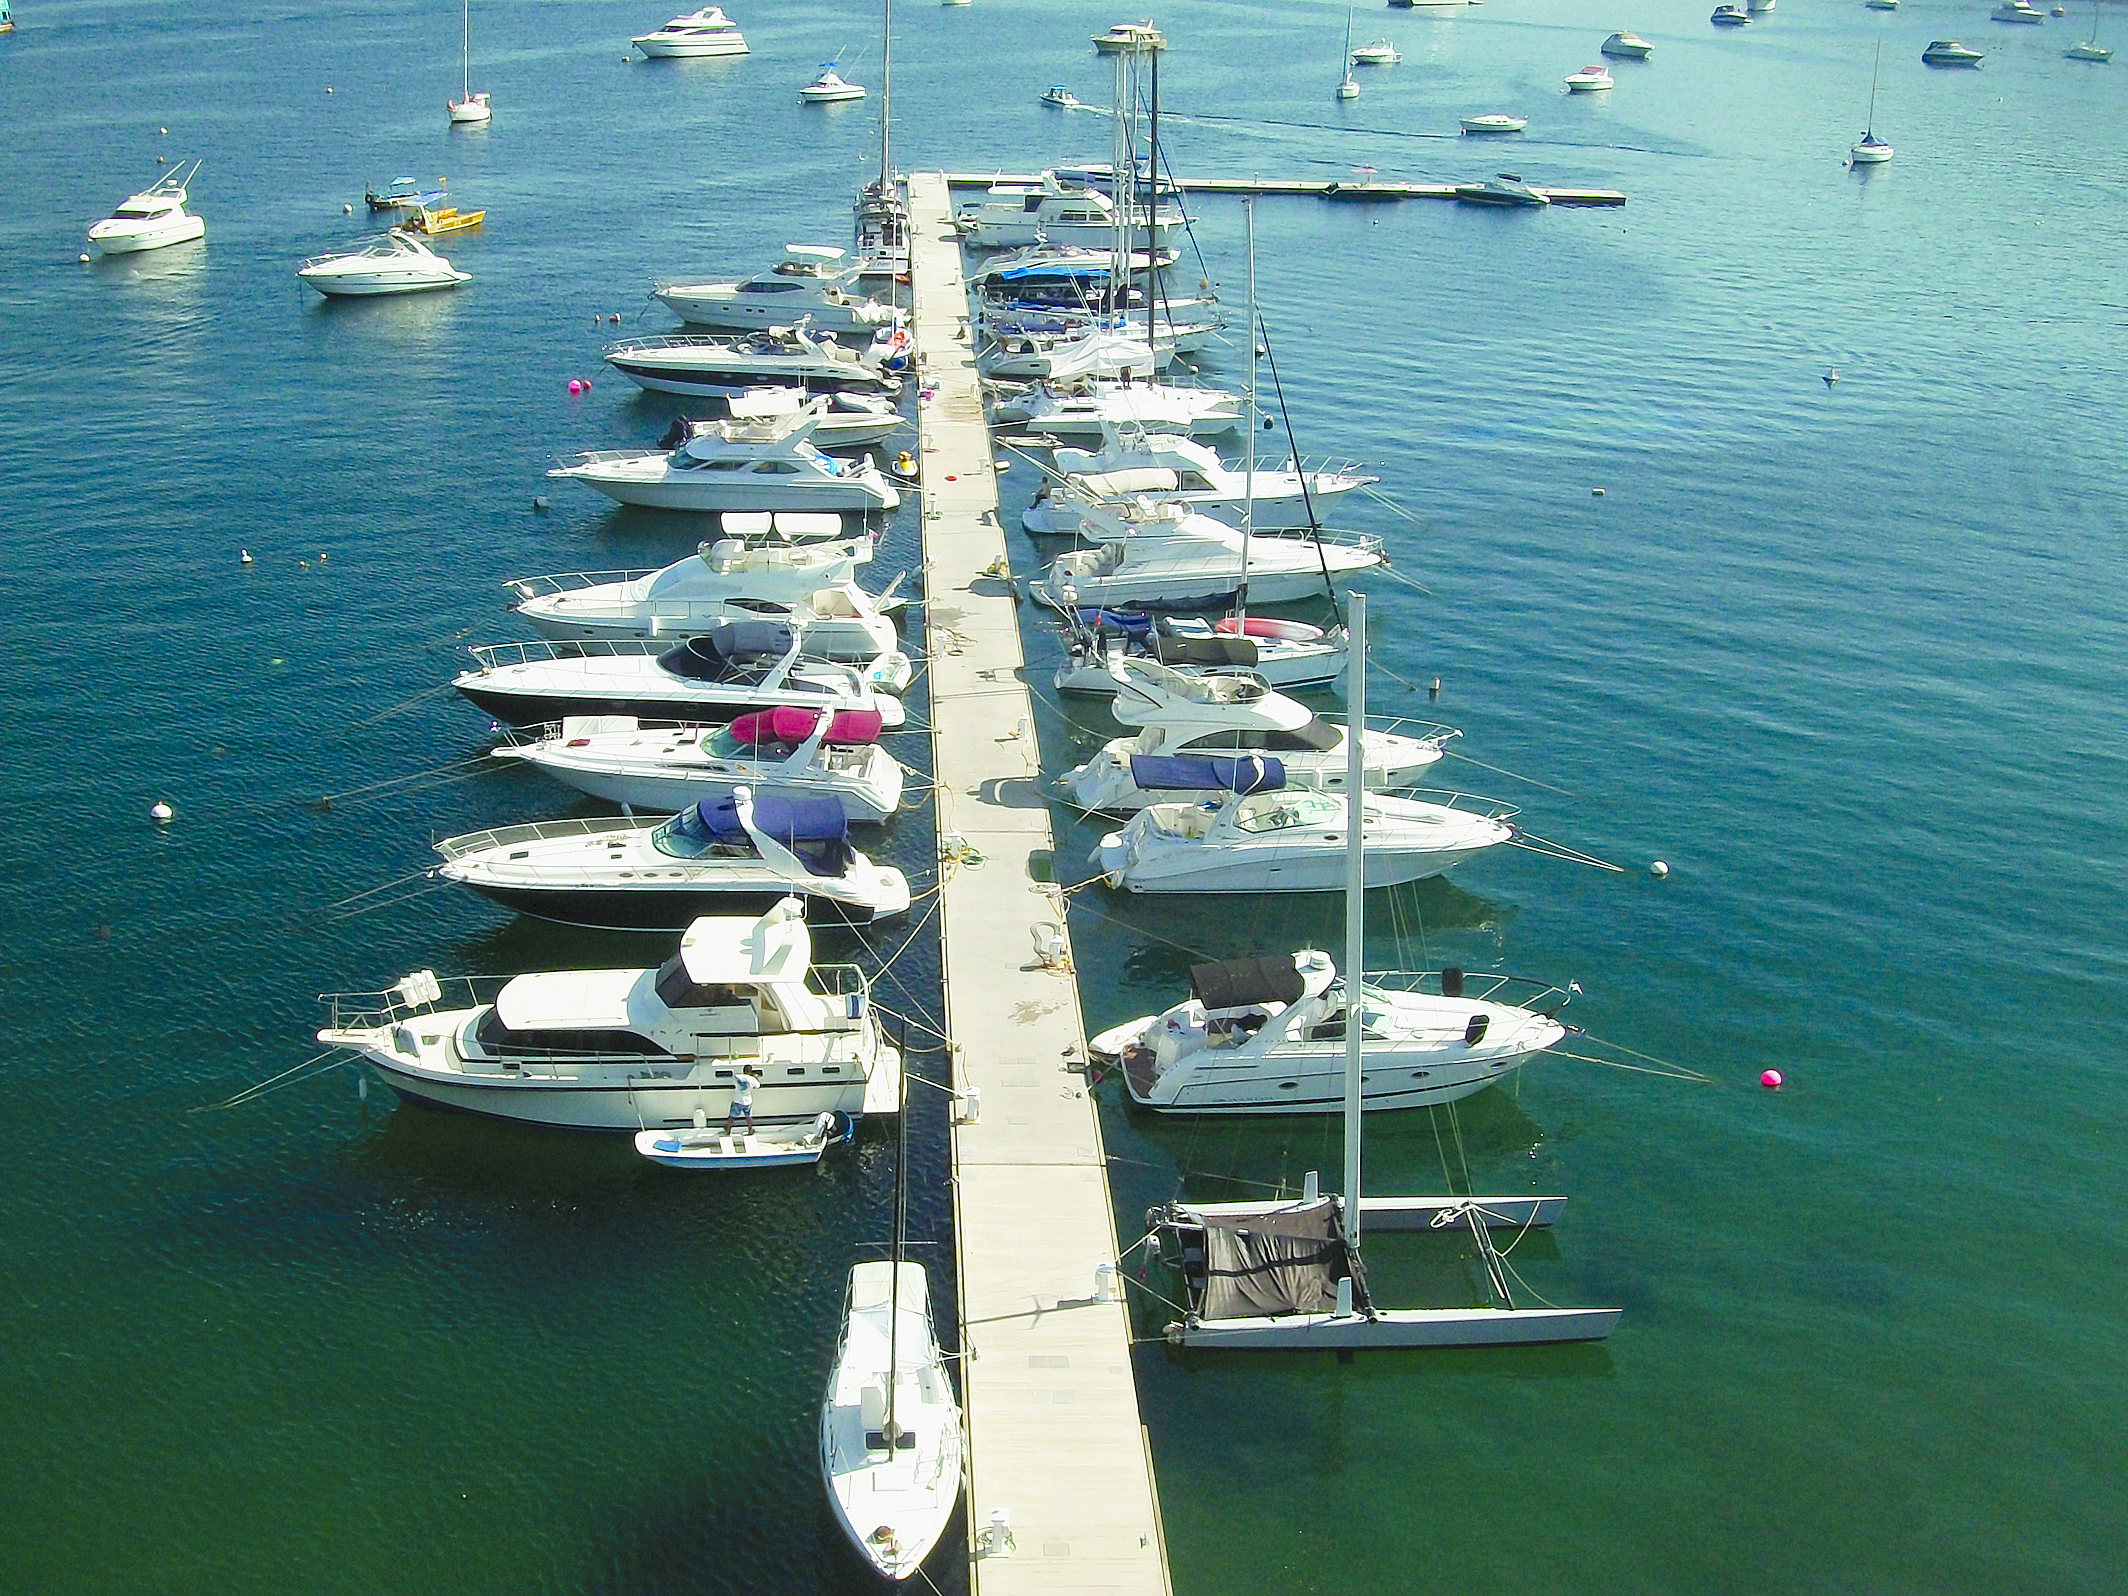 New Docks Installed at La Marina Acapulco